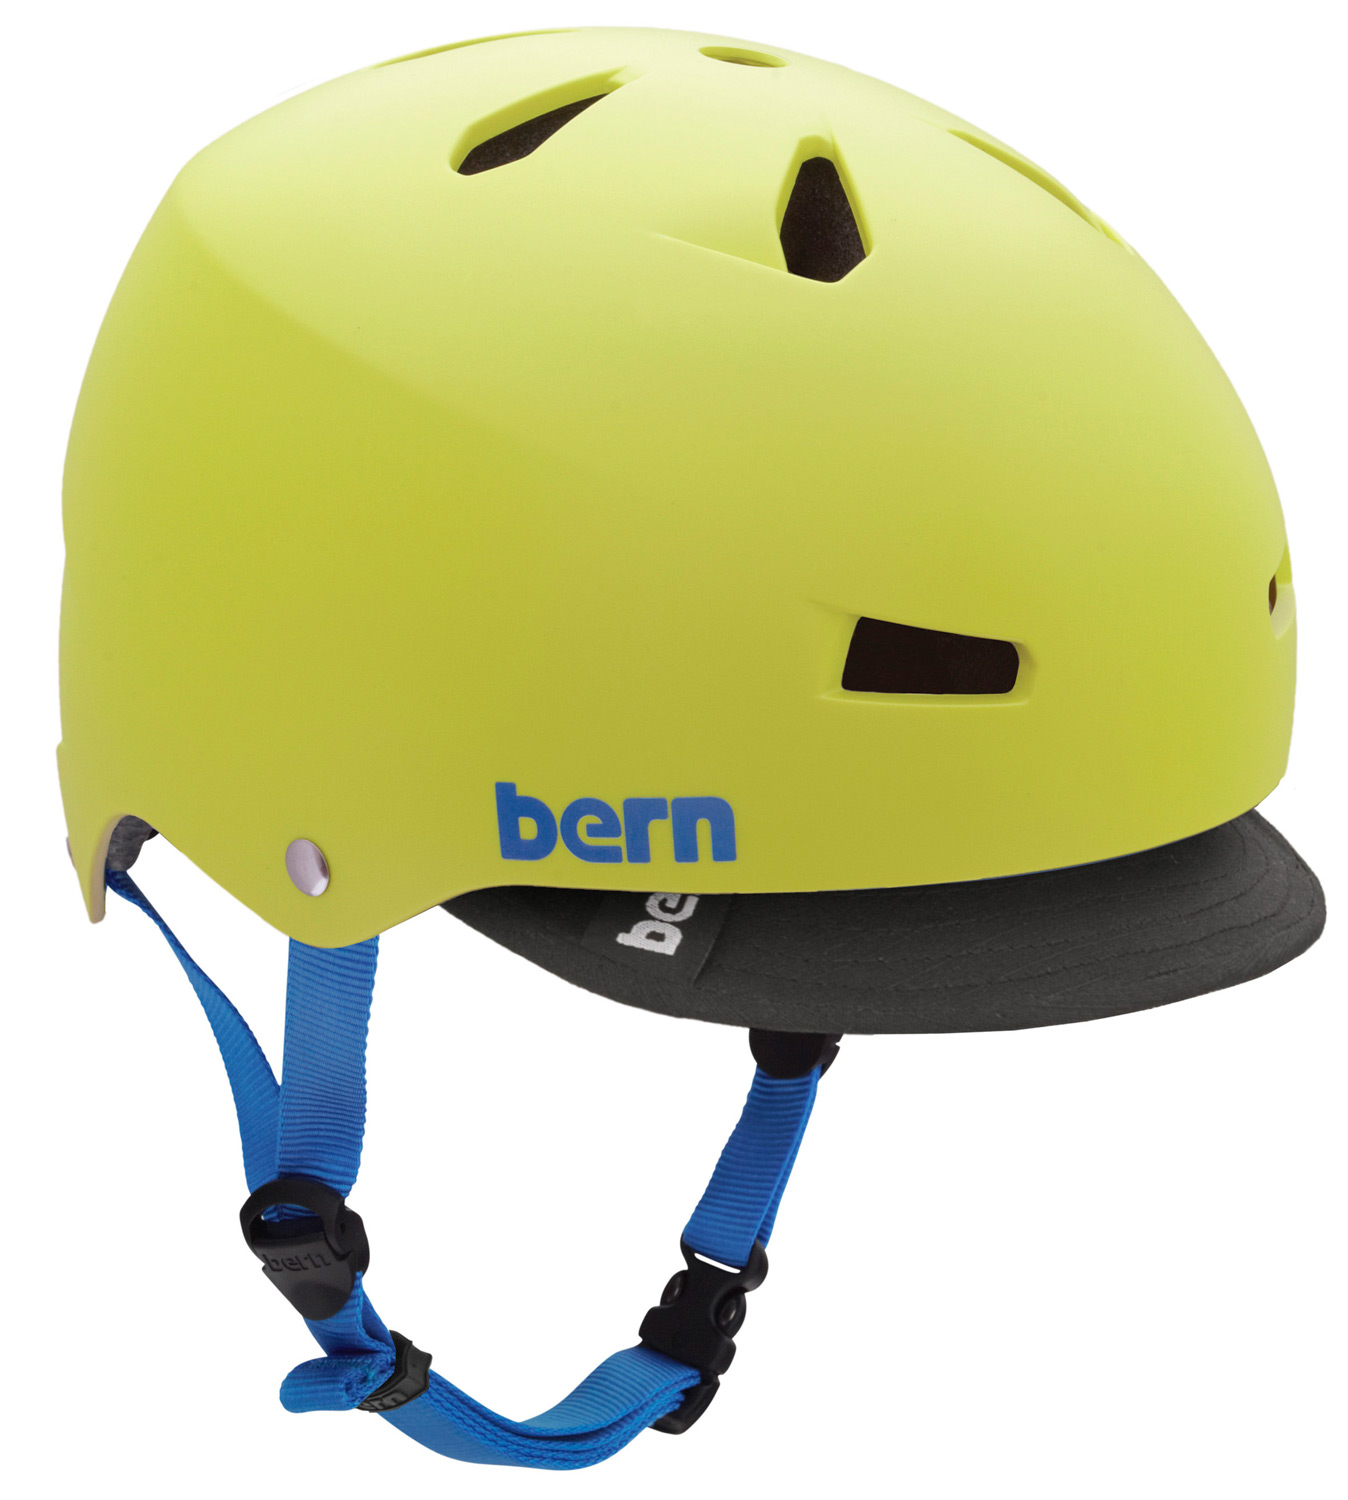 Ski The Macon bike helmet takes skate style to your everyday commute. Core clean lines and durable construction team up with a removable visor for protection against the sun and inclement weather. Bern's All Season liner system allows you to use the Macon on your snowboard, skis or bike.Key Features of the Bern Macon w/ Visor Bike Helmet: Available as a helmet with ABS shell and EPS hard foam. EPS hard foam meets ASTM F 2040 and EN 1077B standards for snow and ski, CPSC and EN 1078 standards for bike and skate. 19.1 oz - $40.95